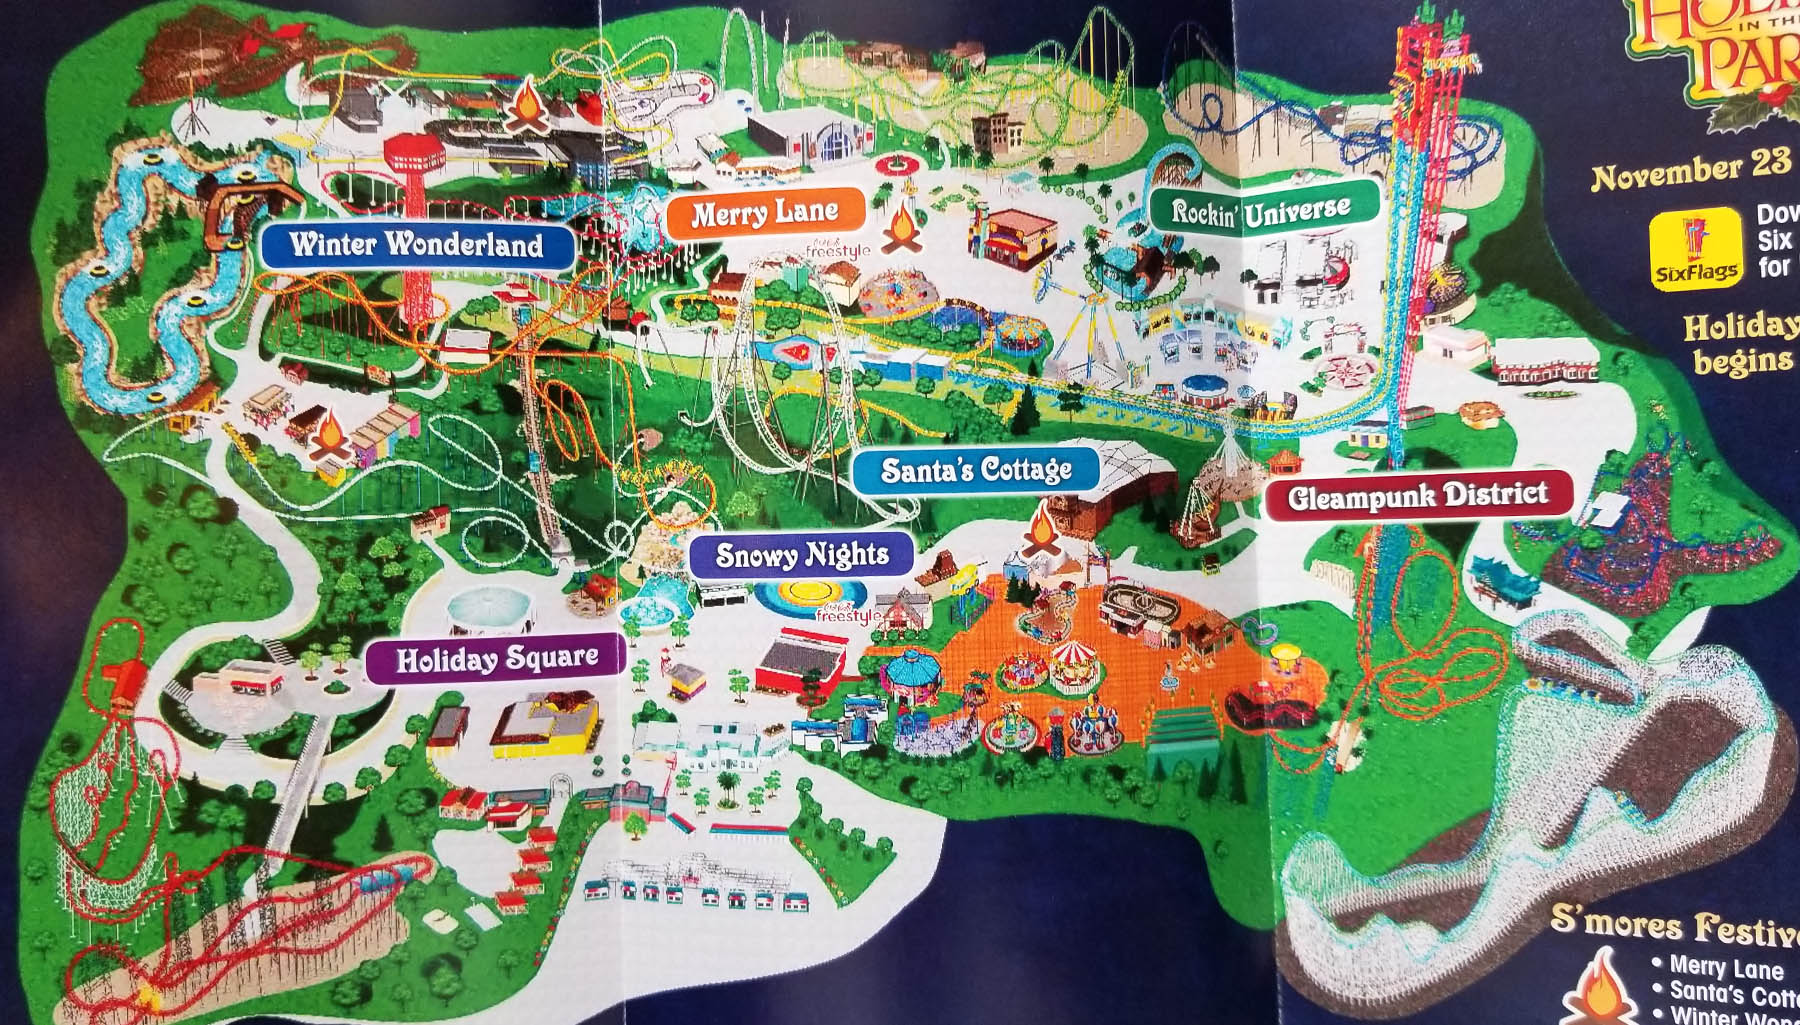 2019 Six Flags Los Angeles Holiday map